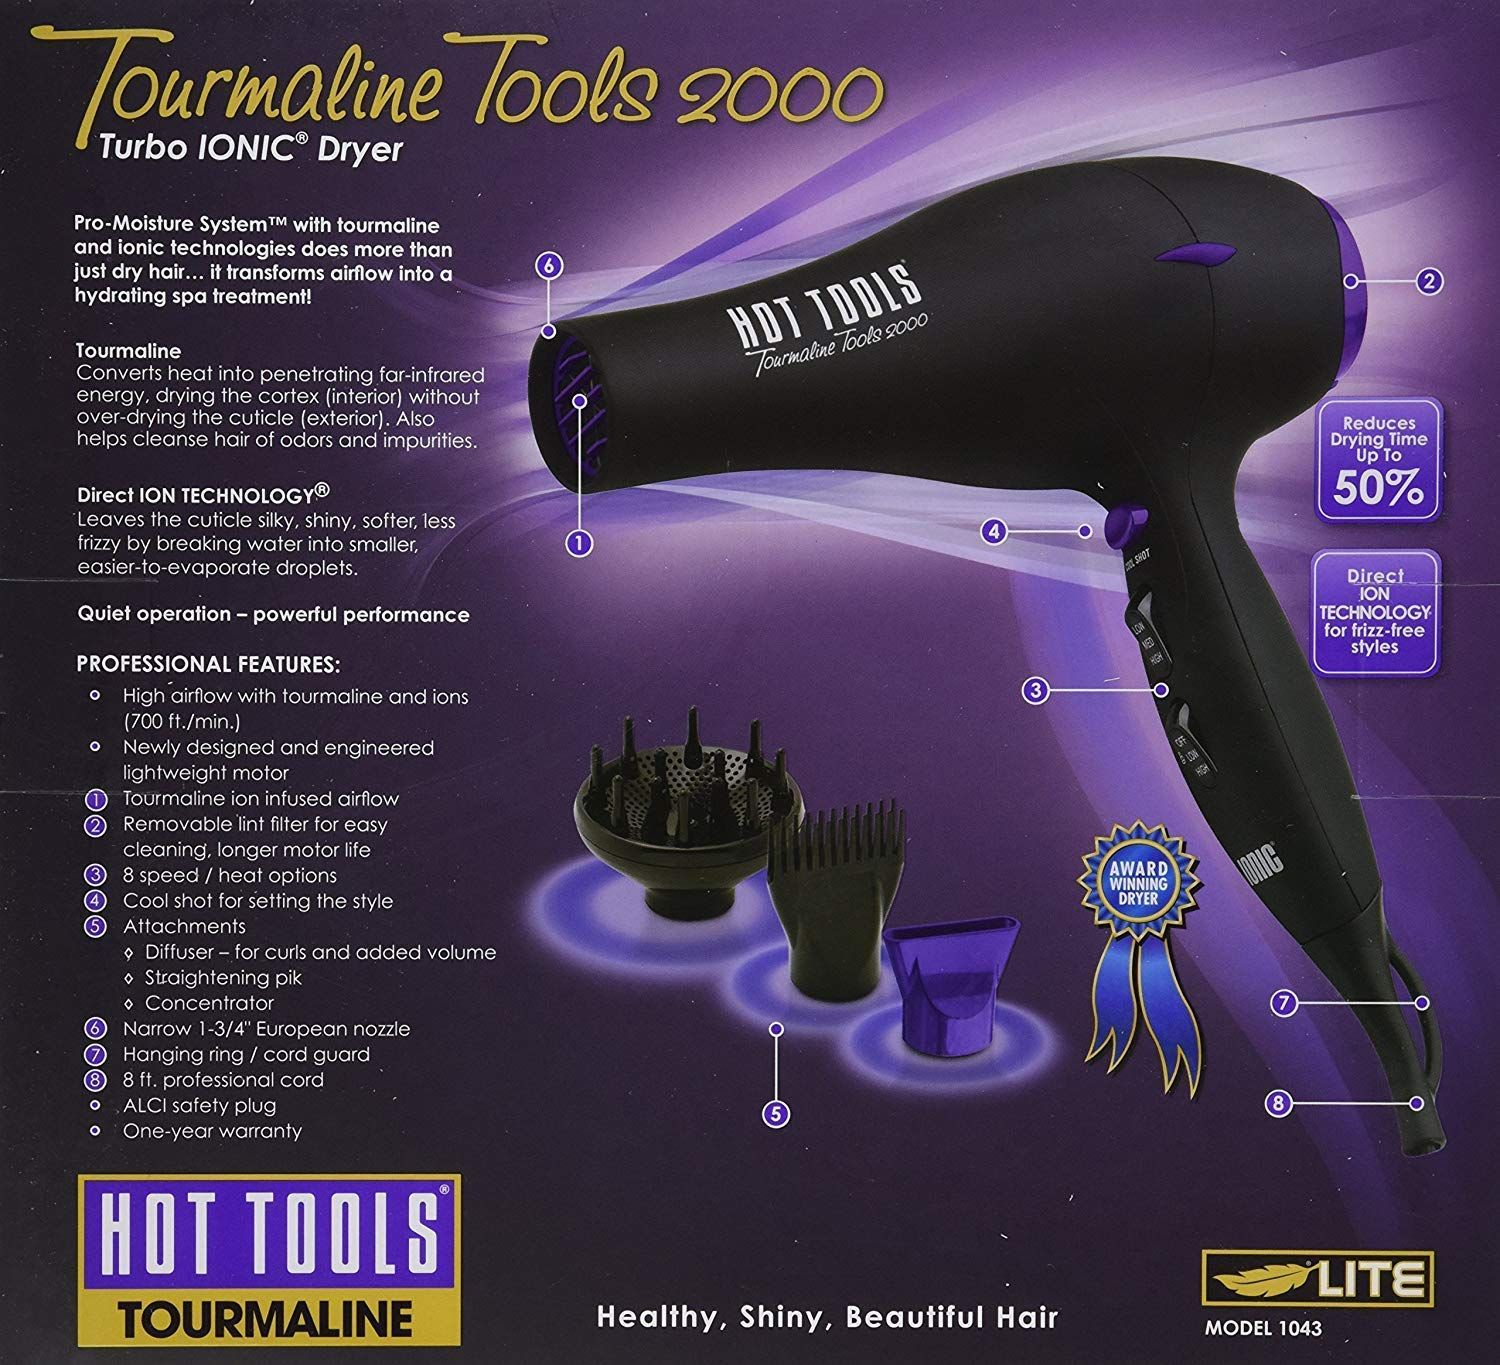 d18f5d7b4cab Helen of Troy- Hot Tools Tourmaline Ionic Professional Hair Dryer 1875 Watt  (Model 1043)     Sincerely hope you actually do love the picture.